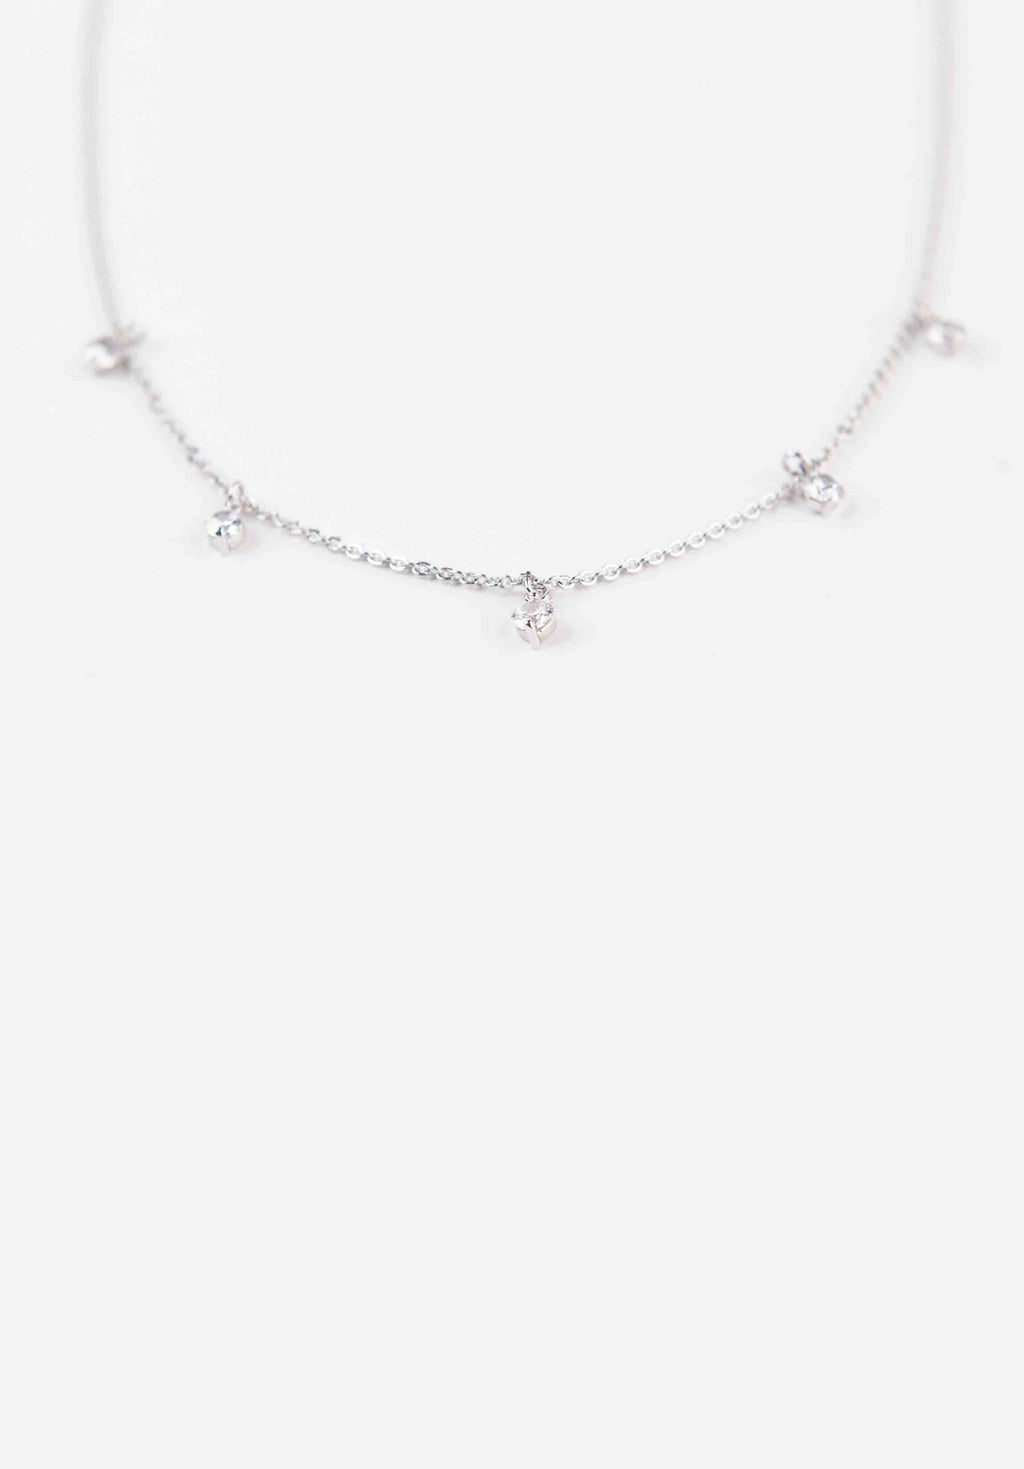 STUDDED NECKLACE | WHITE GOLD